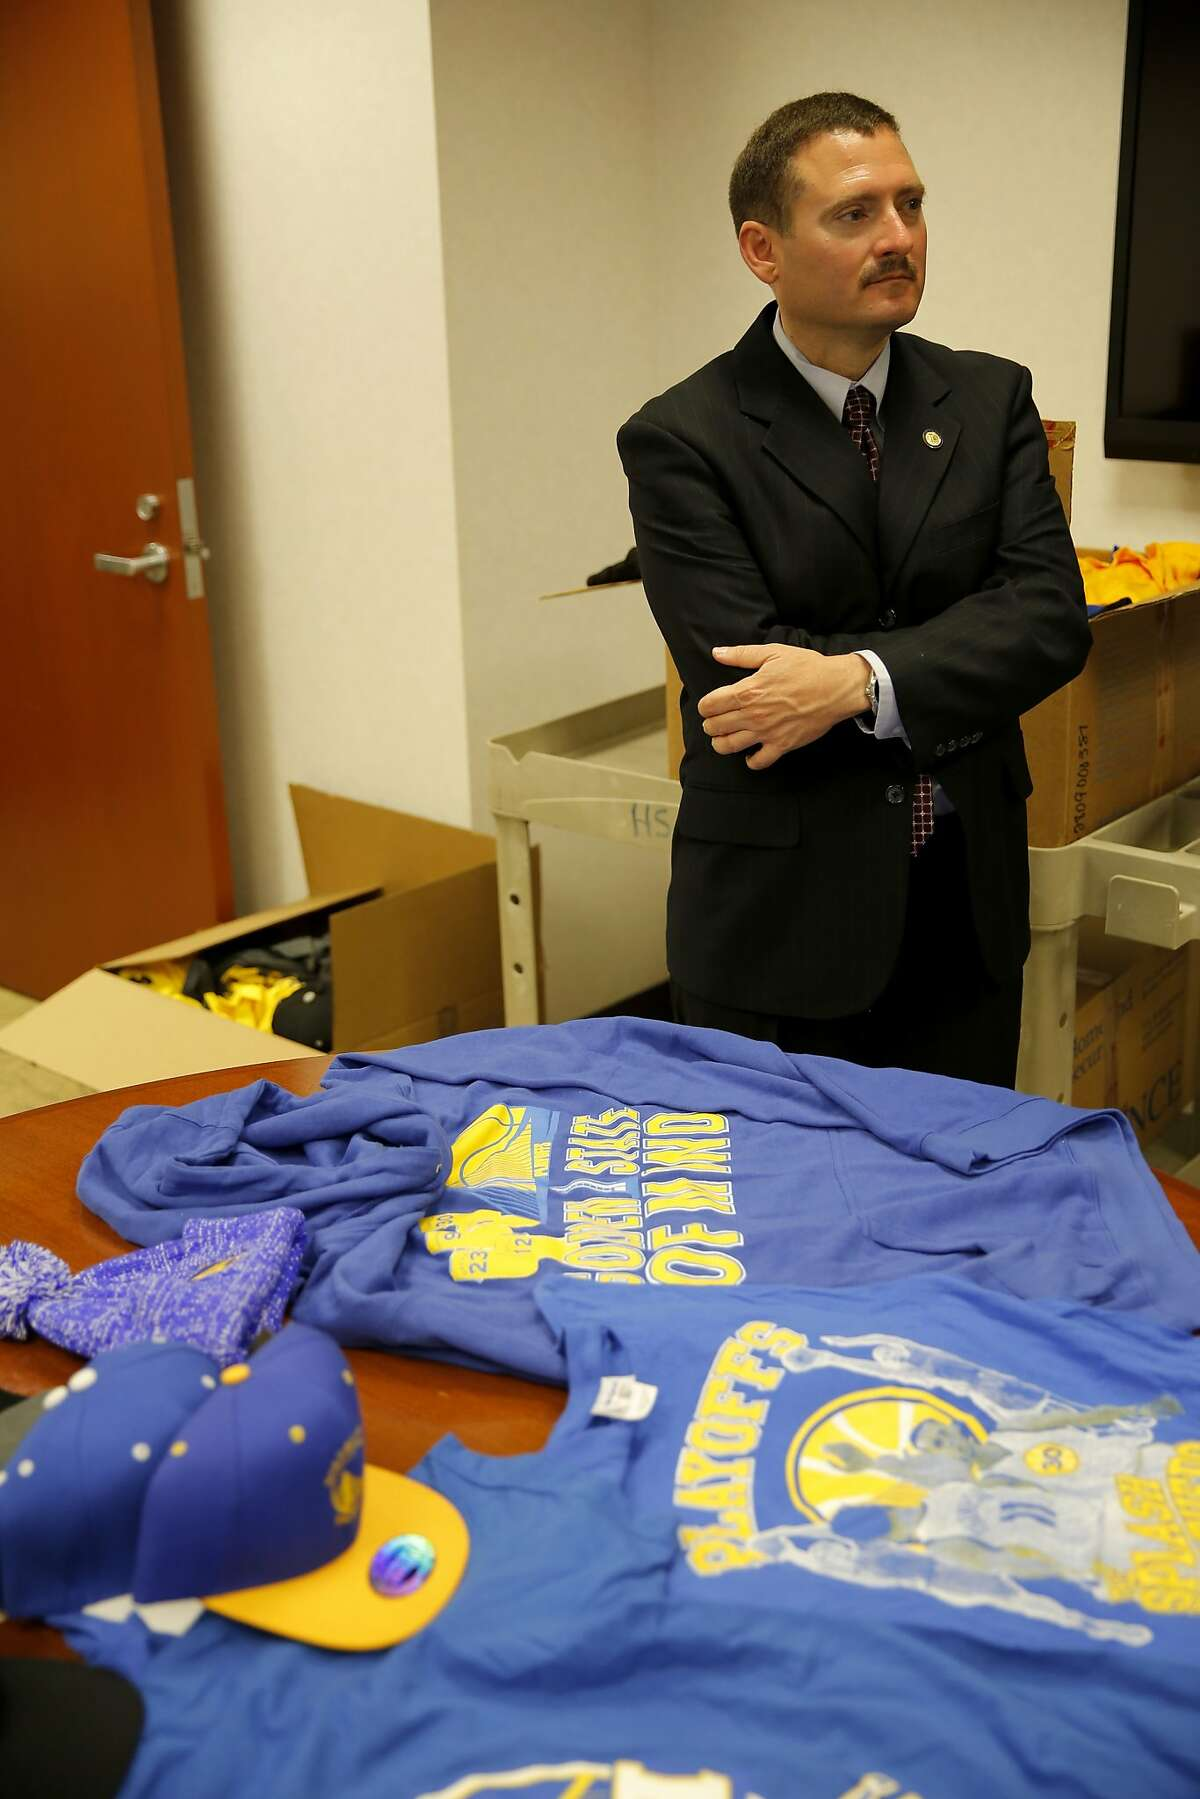 Tatum King, Acting Special Agent in Charge for Homeland Security Investigations in San Francisco, stands in front of seized Golden State Warriors shirts and hats in a conference room of the U.S. Immigration and Customs Enforcement's Homeland Security Investigations department in San Francisco, California, on Monday, June 29, 2015. The Department said it seized nearly half a million dollars in counterfeit gear.